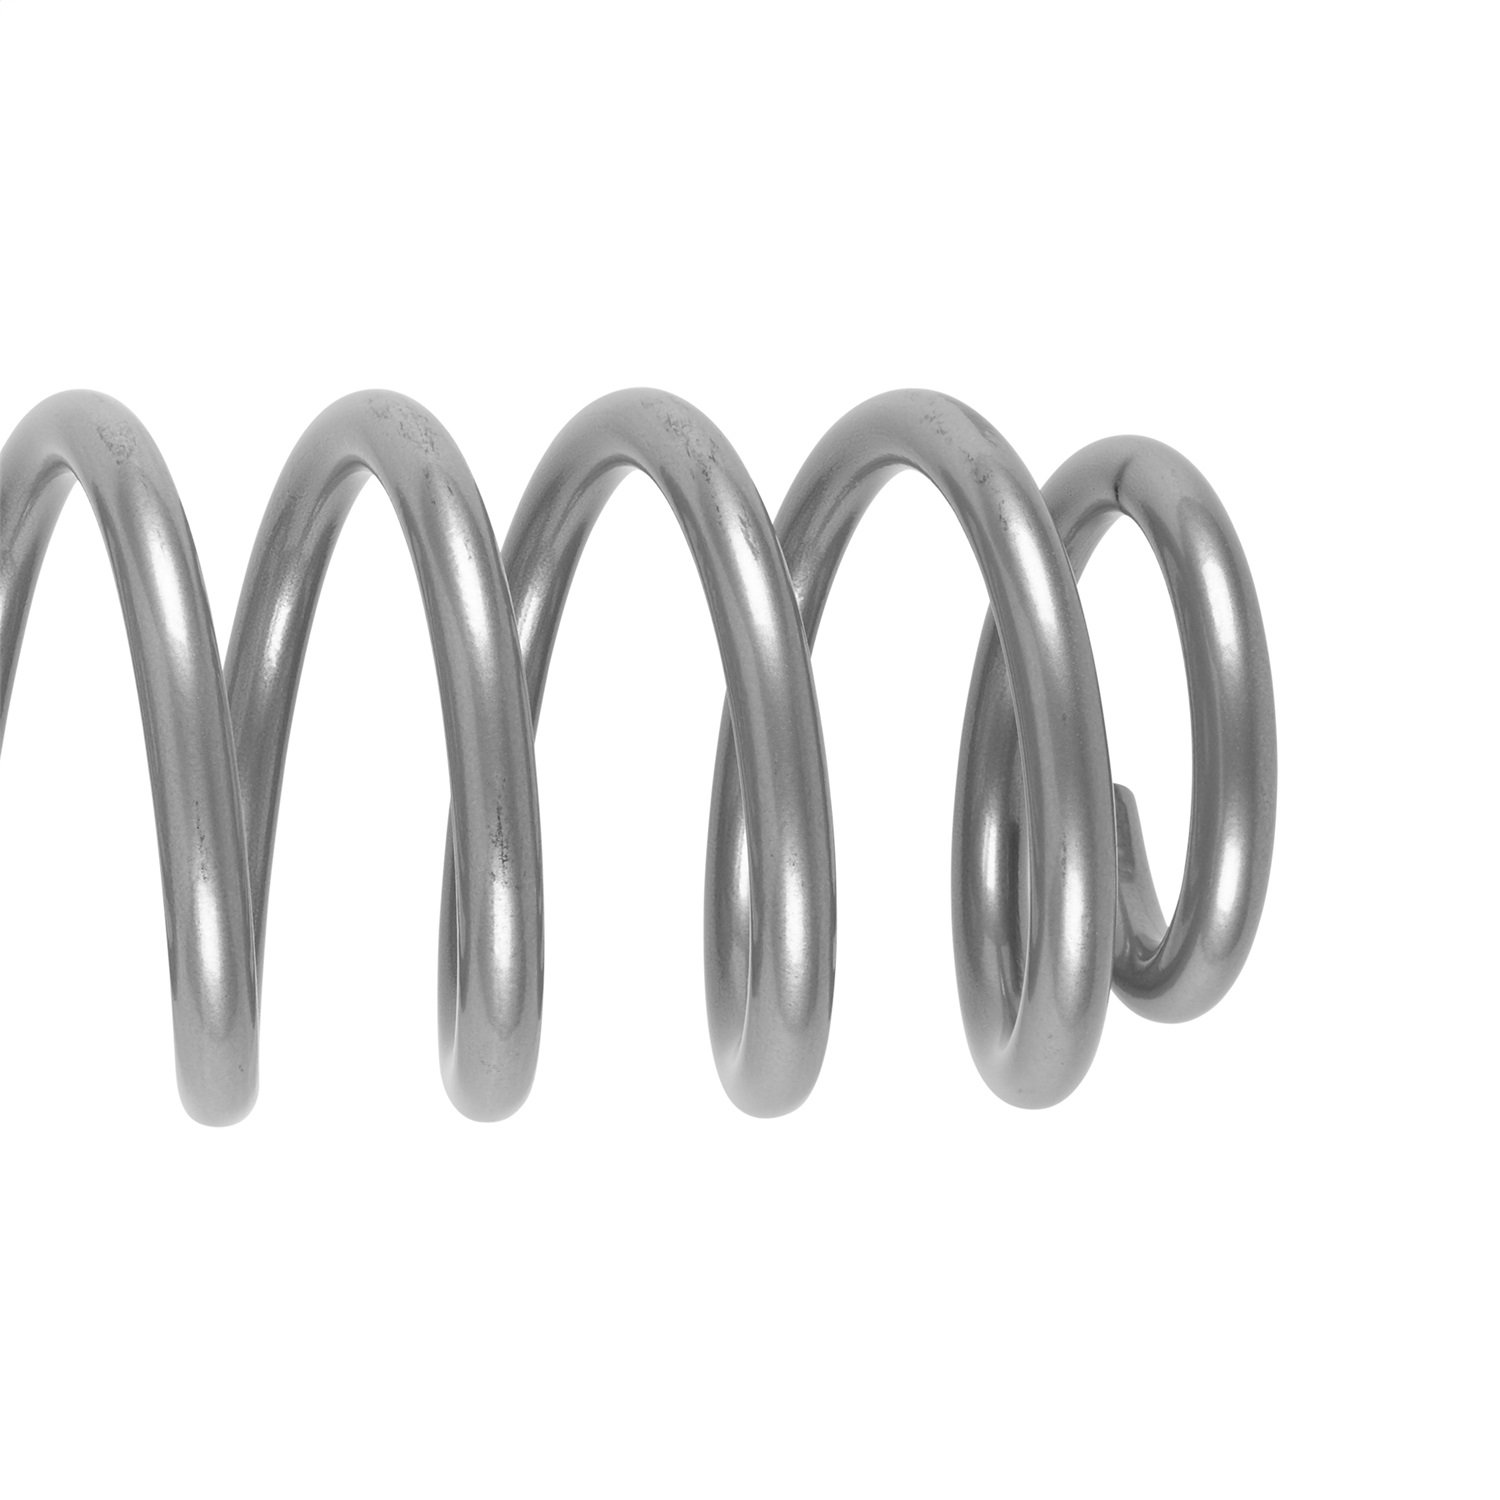 Rubicon Express RE1310 4.5' Coil Spring for Jeep XJ - Pair